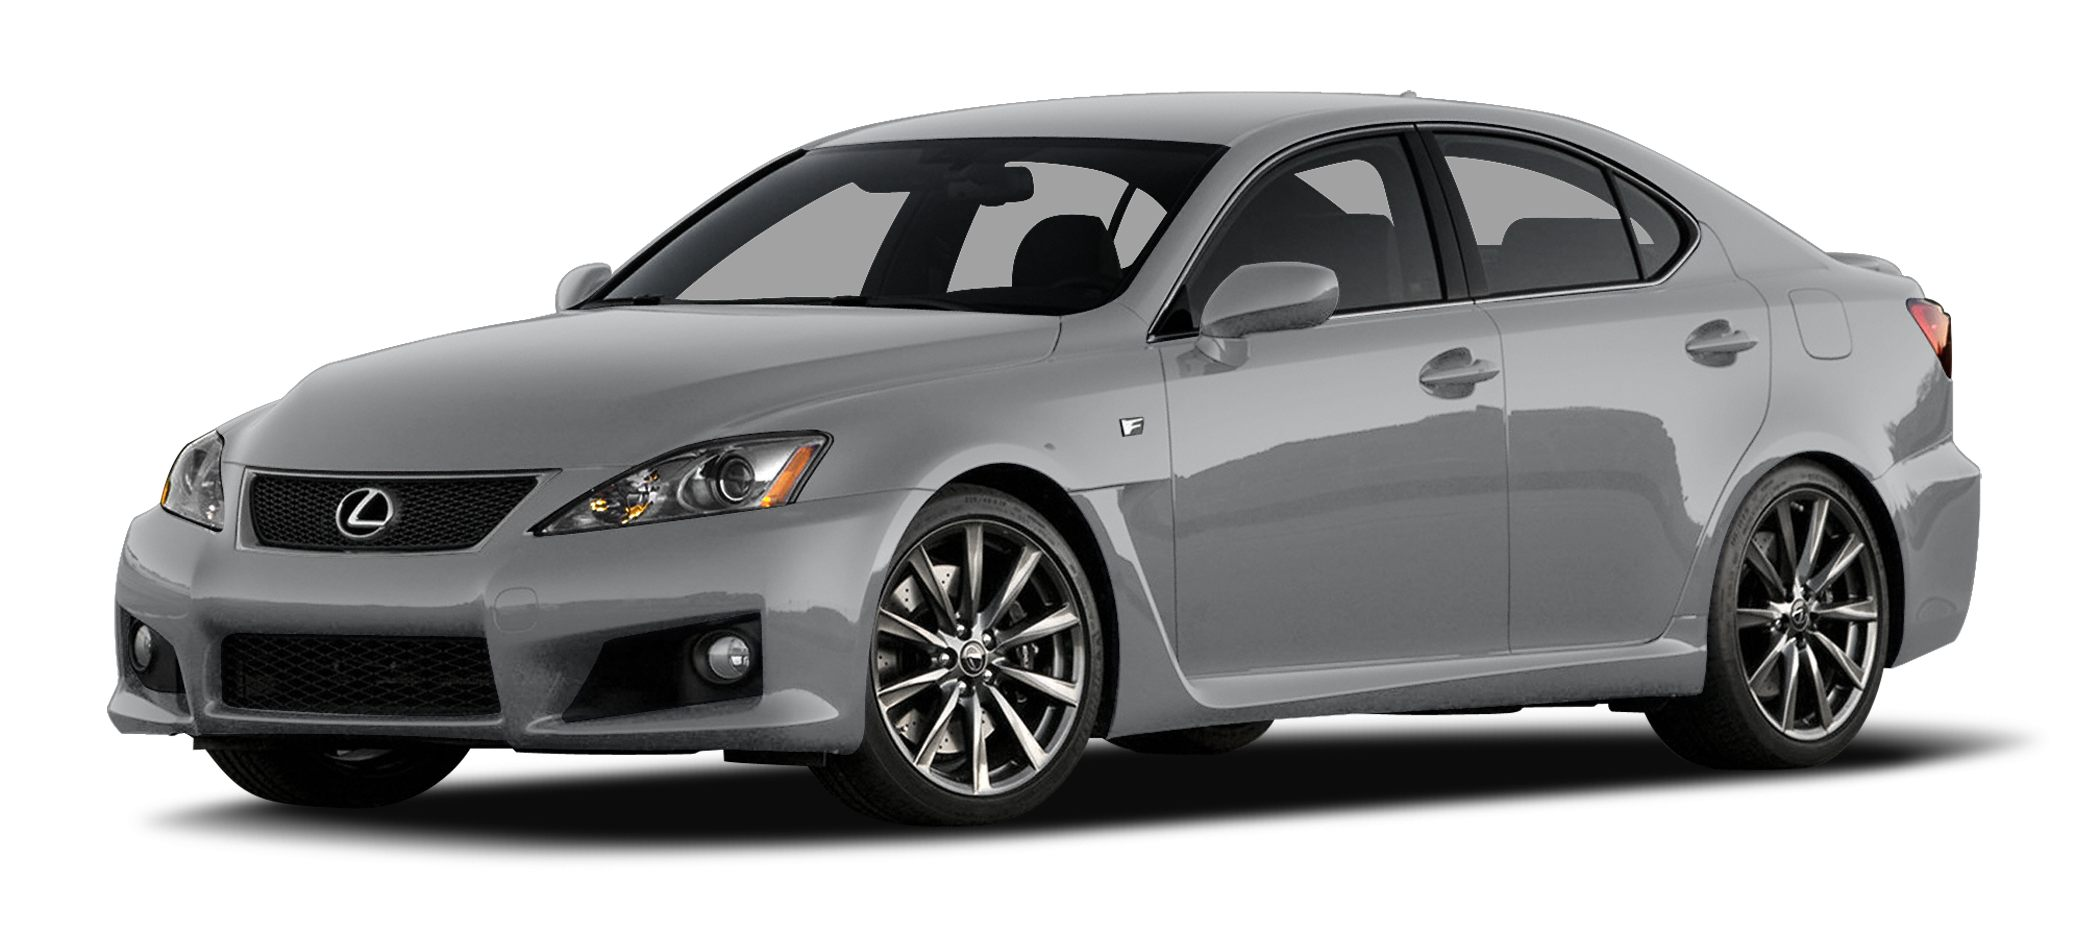 2011 Lexus IS-F Base Win a score on this 2011 Lexus IS F before its too late Comfortable but eas